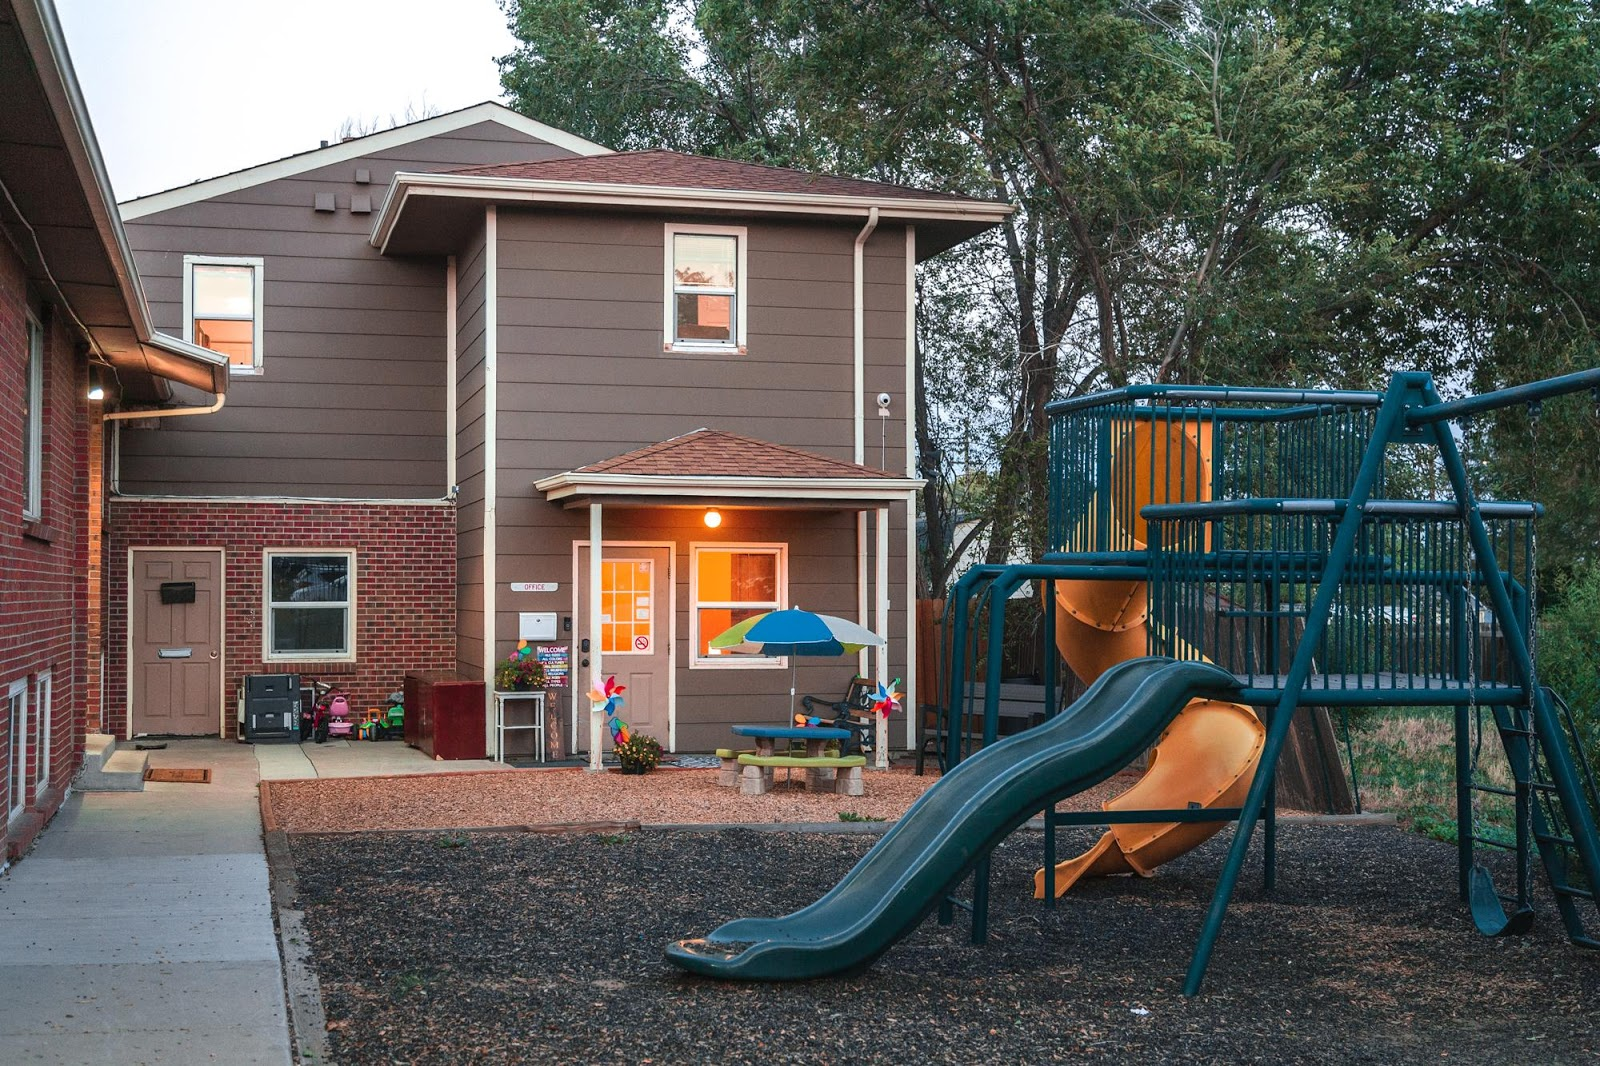 ACCESS Housing Transitional Housing